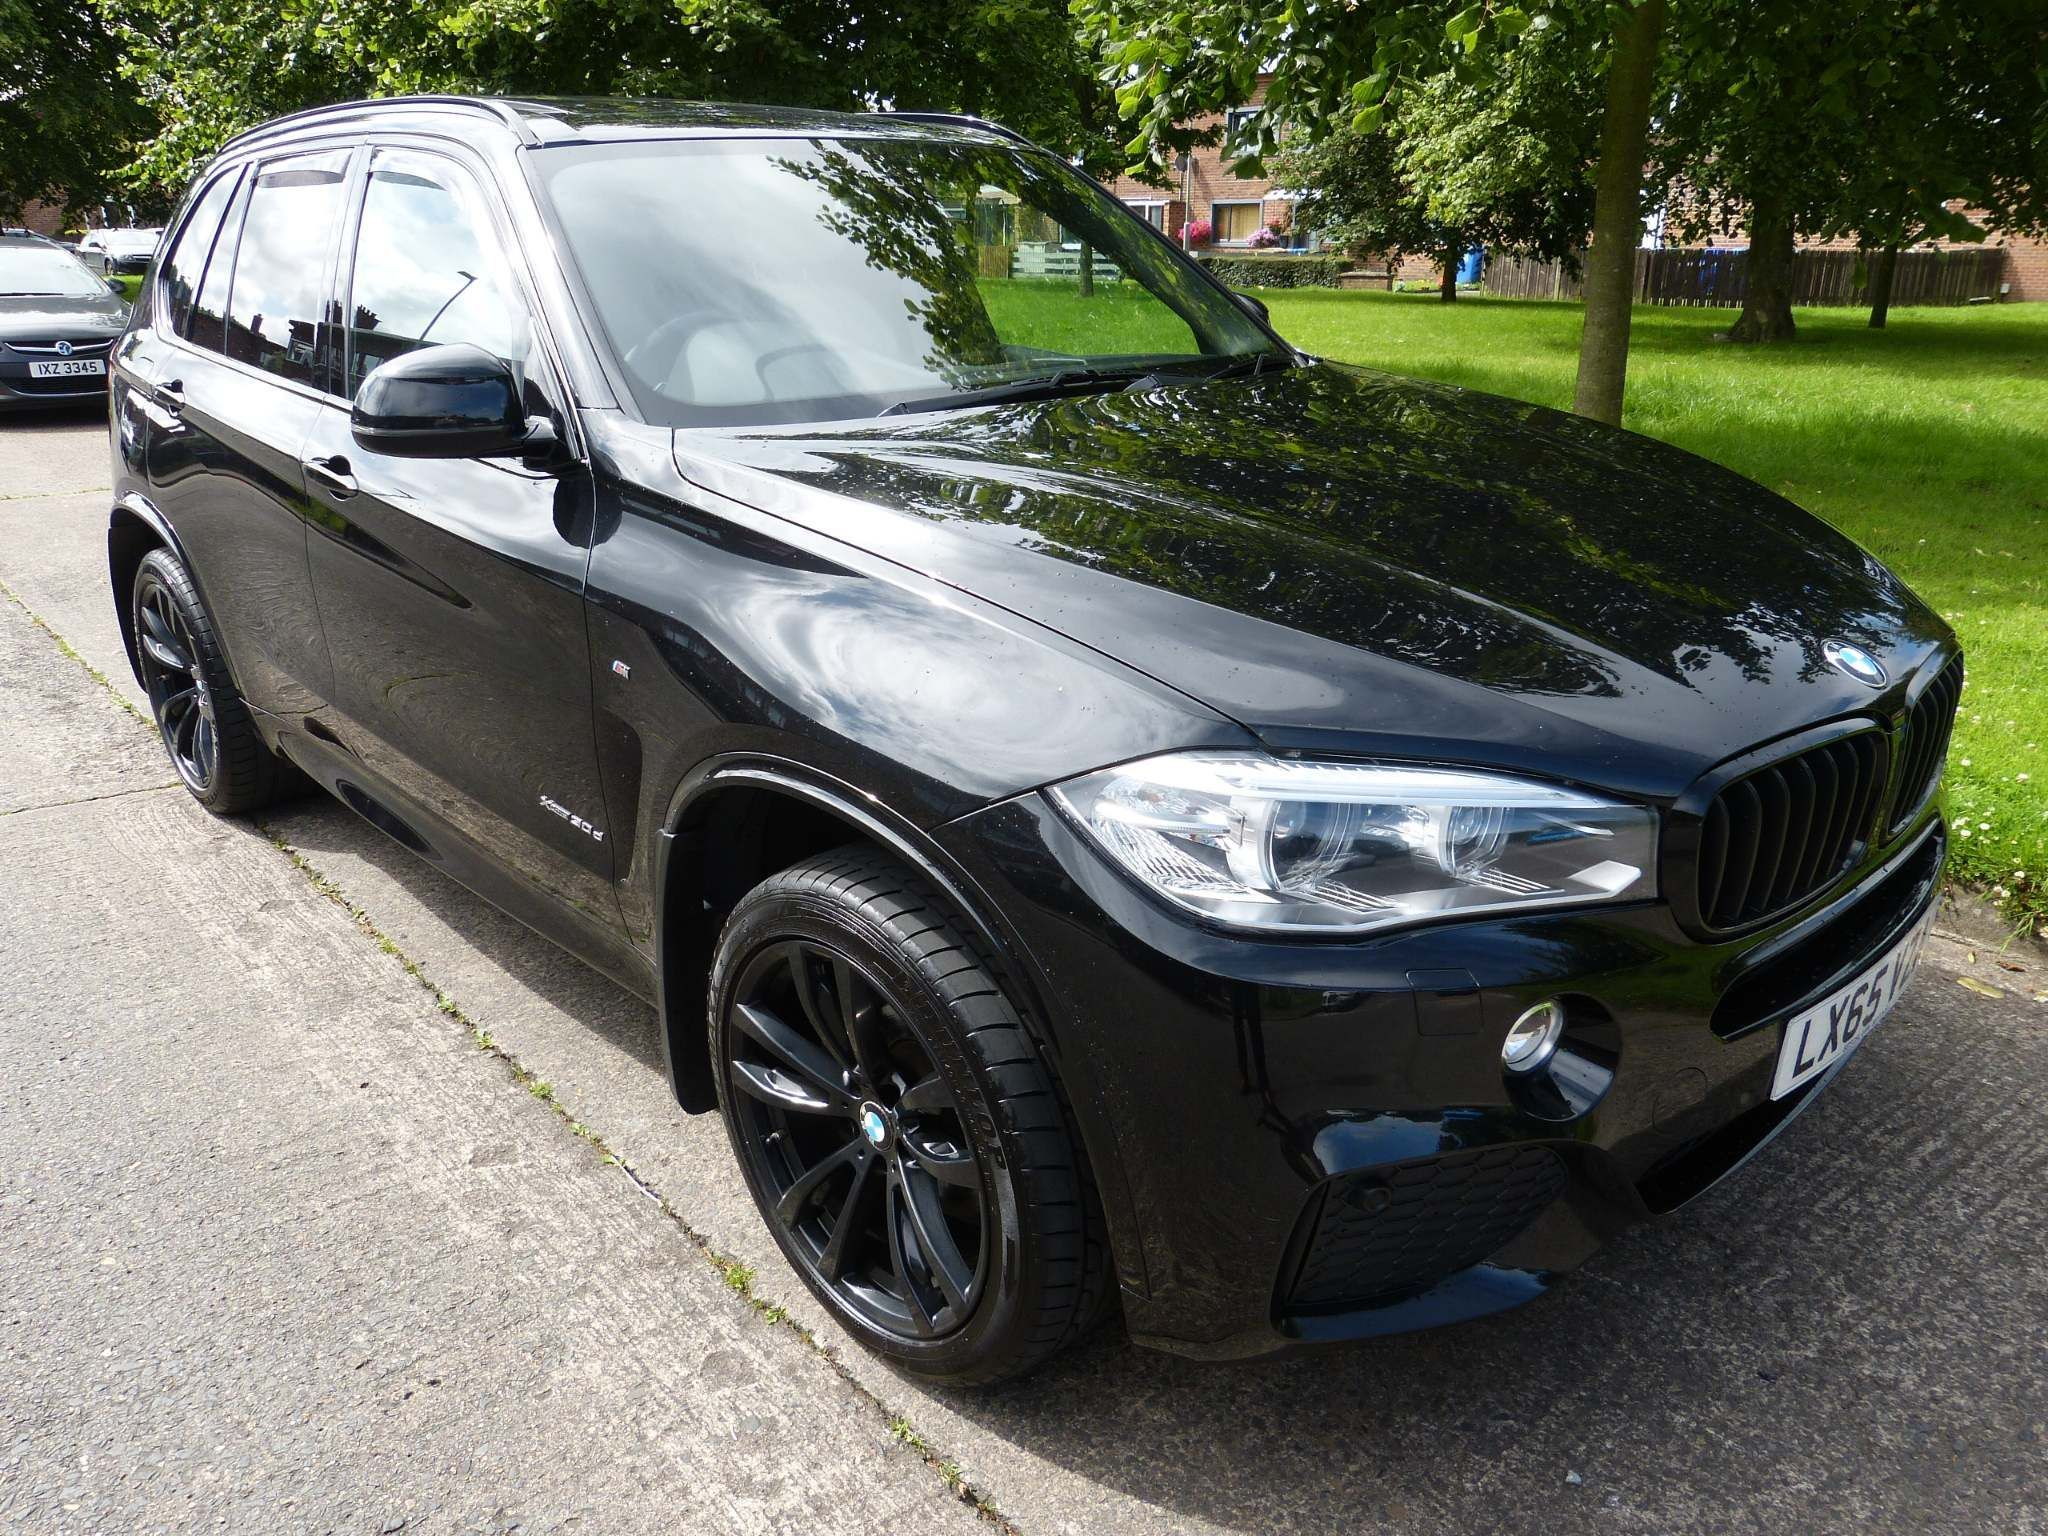 2015 BMW X5 3.0 30d M Sport Auto xDrive (s/s) Diesel Automatic seven seats  panoramic sunroof – Beechlawn Motors Belfast